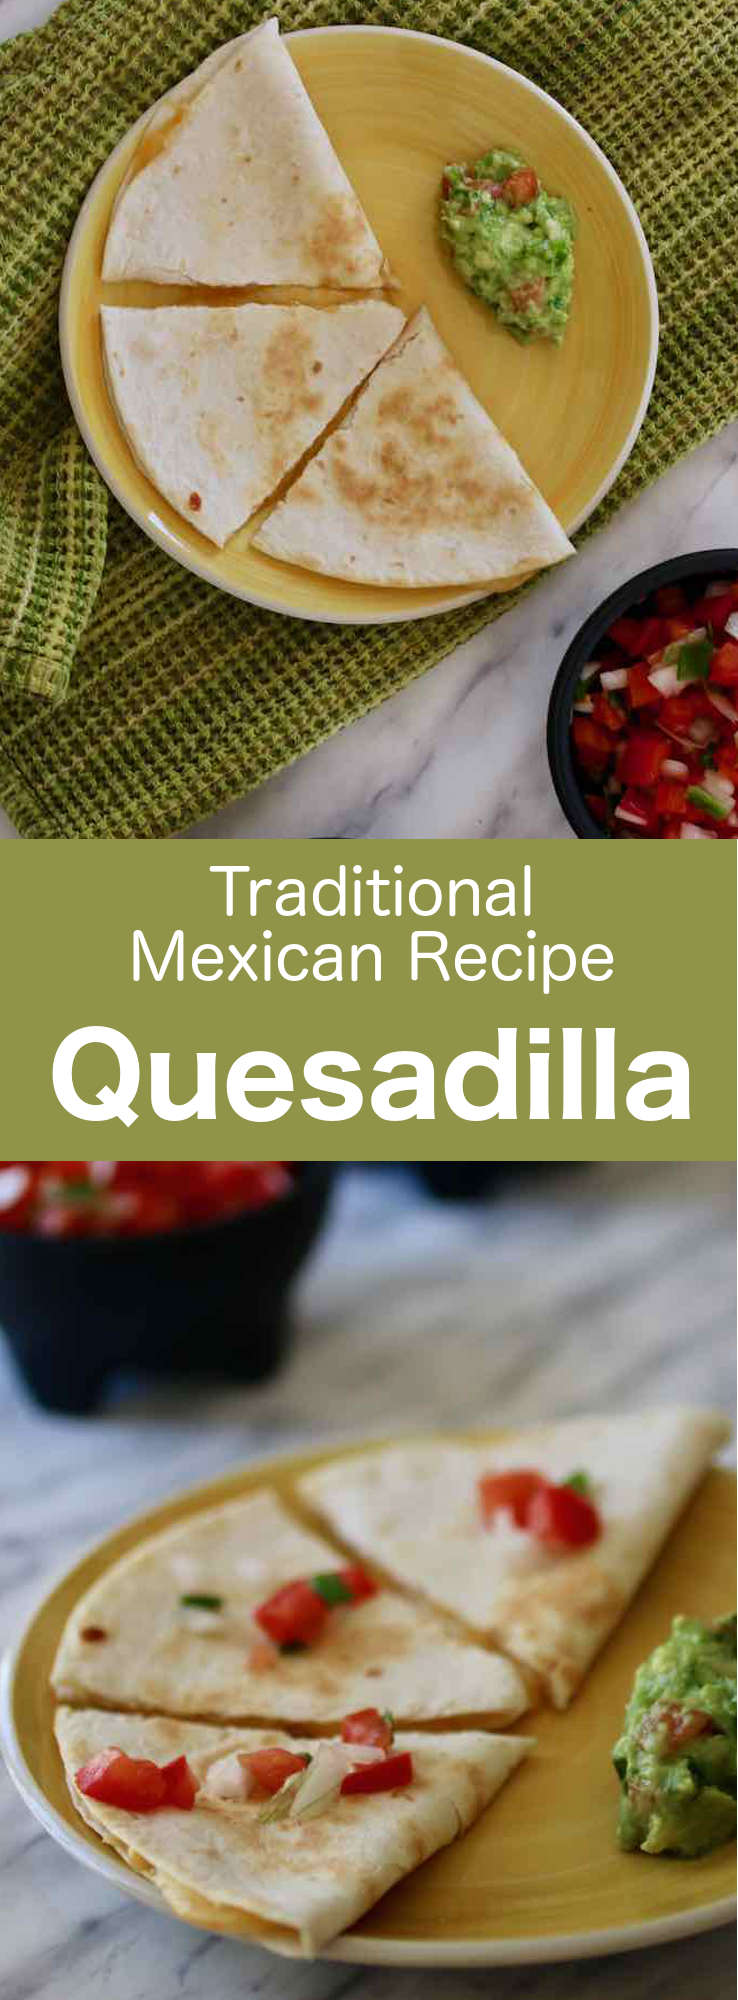 A quesadilla is a corn or flour tortilla folded in half, stuffed with various ingredients that typically include cheese, and that is grilled on a comal. #Mexican #MexicanFood #MexicanCuisine #MexicanRecipe #WorldCuisine #196flavors